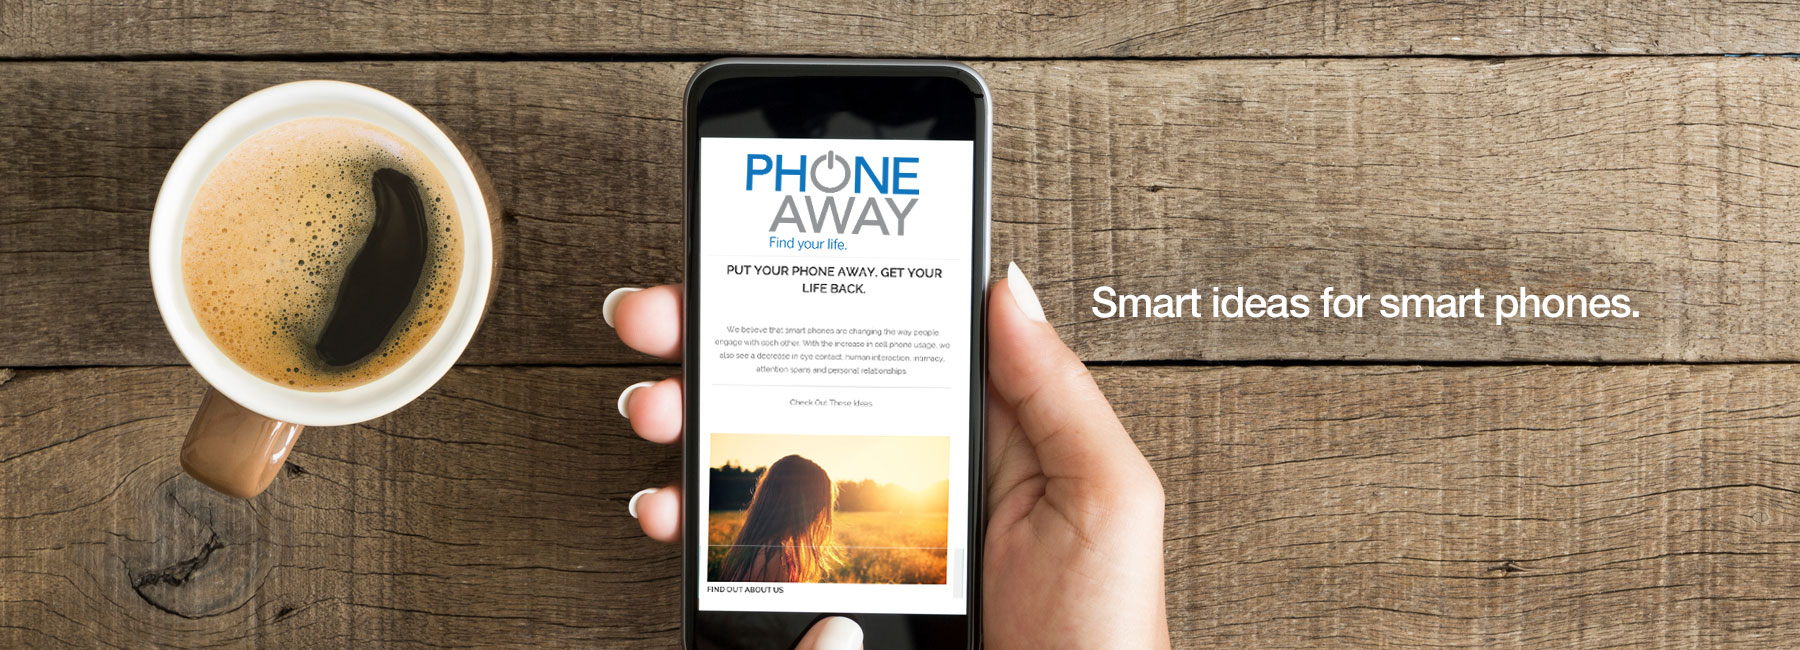 Products to help you manage phone addictions.